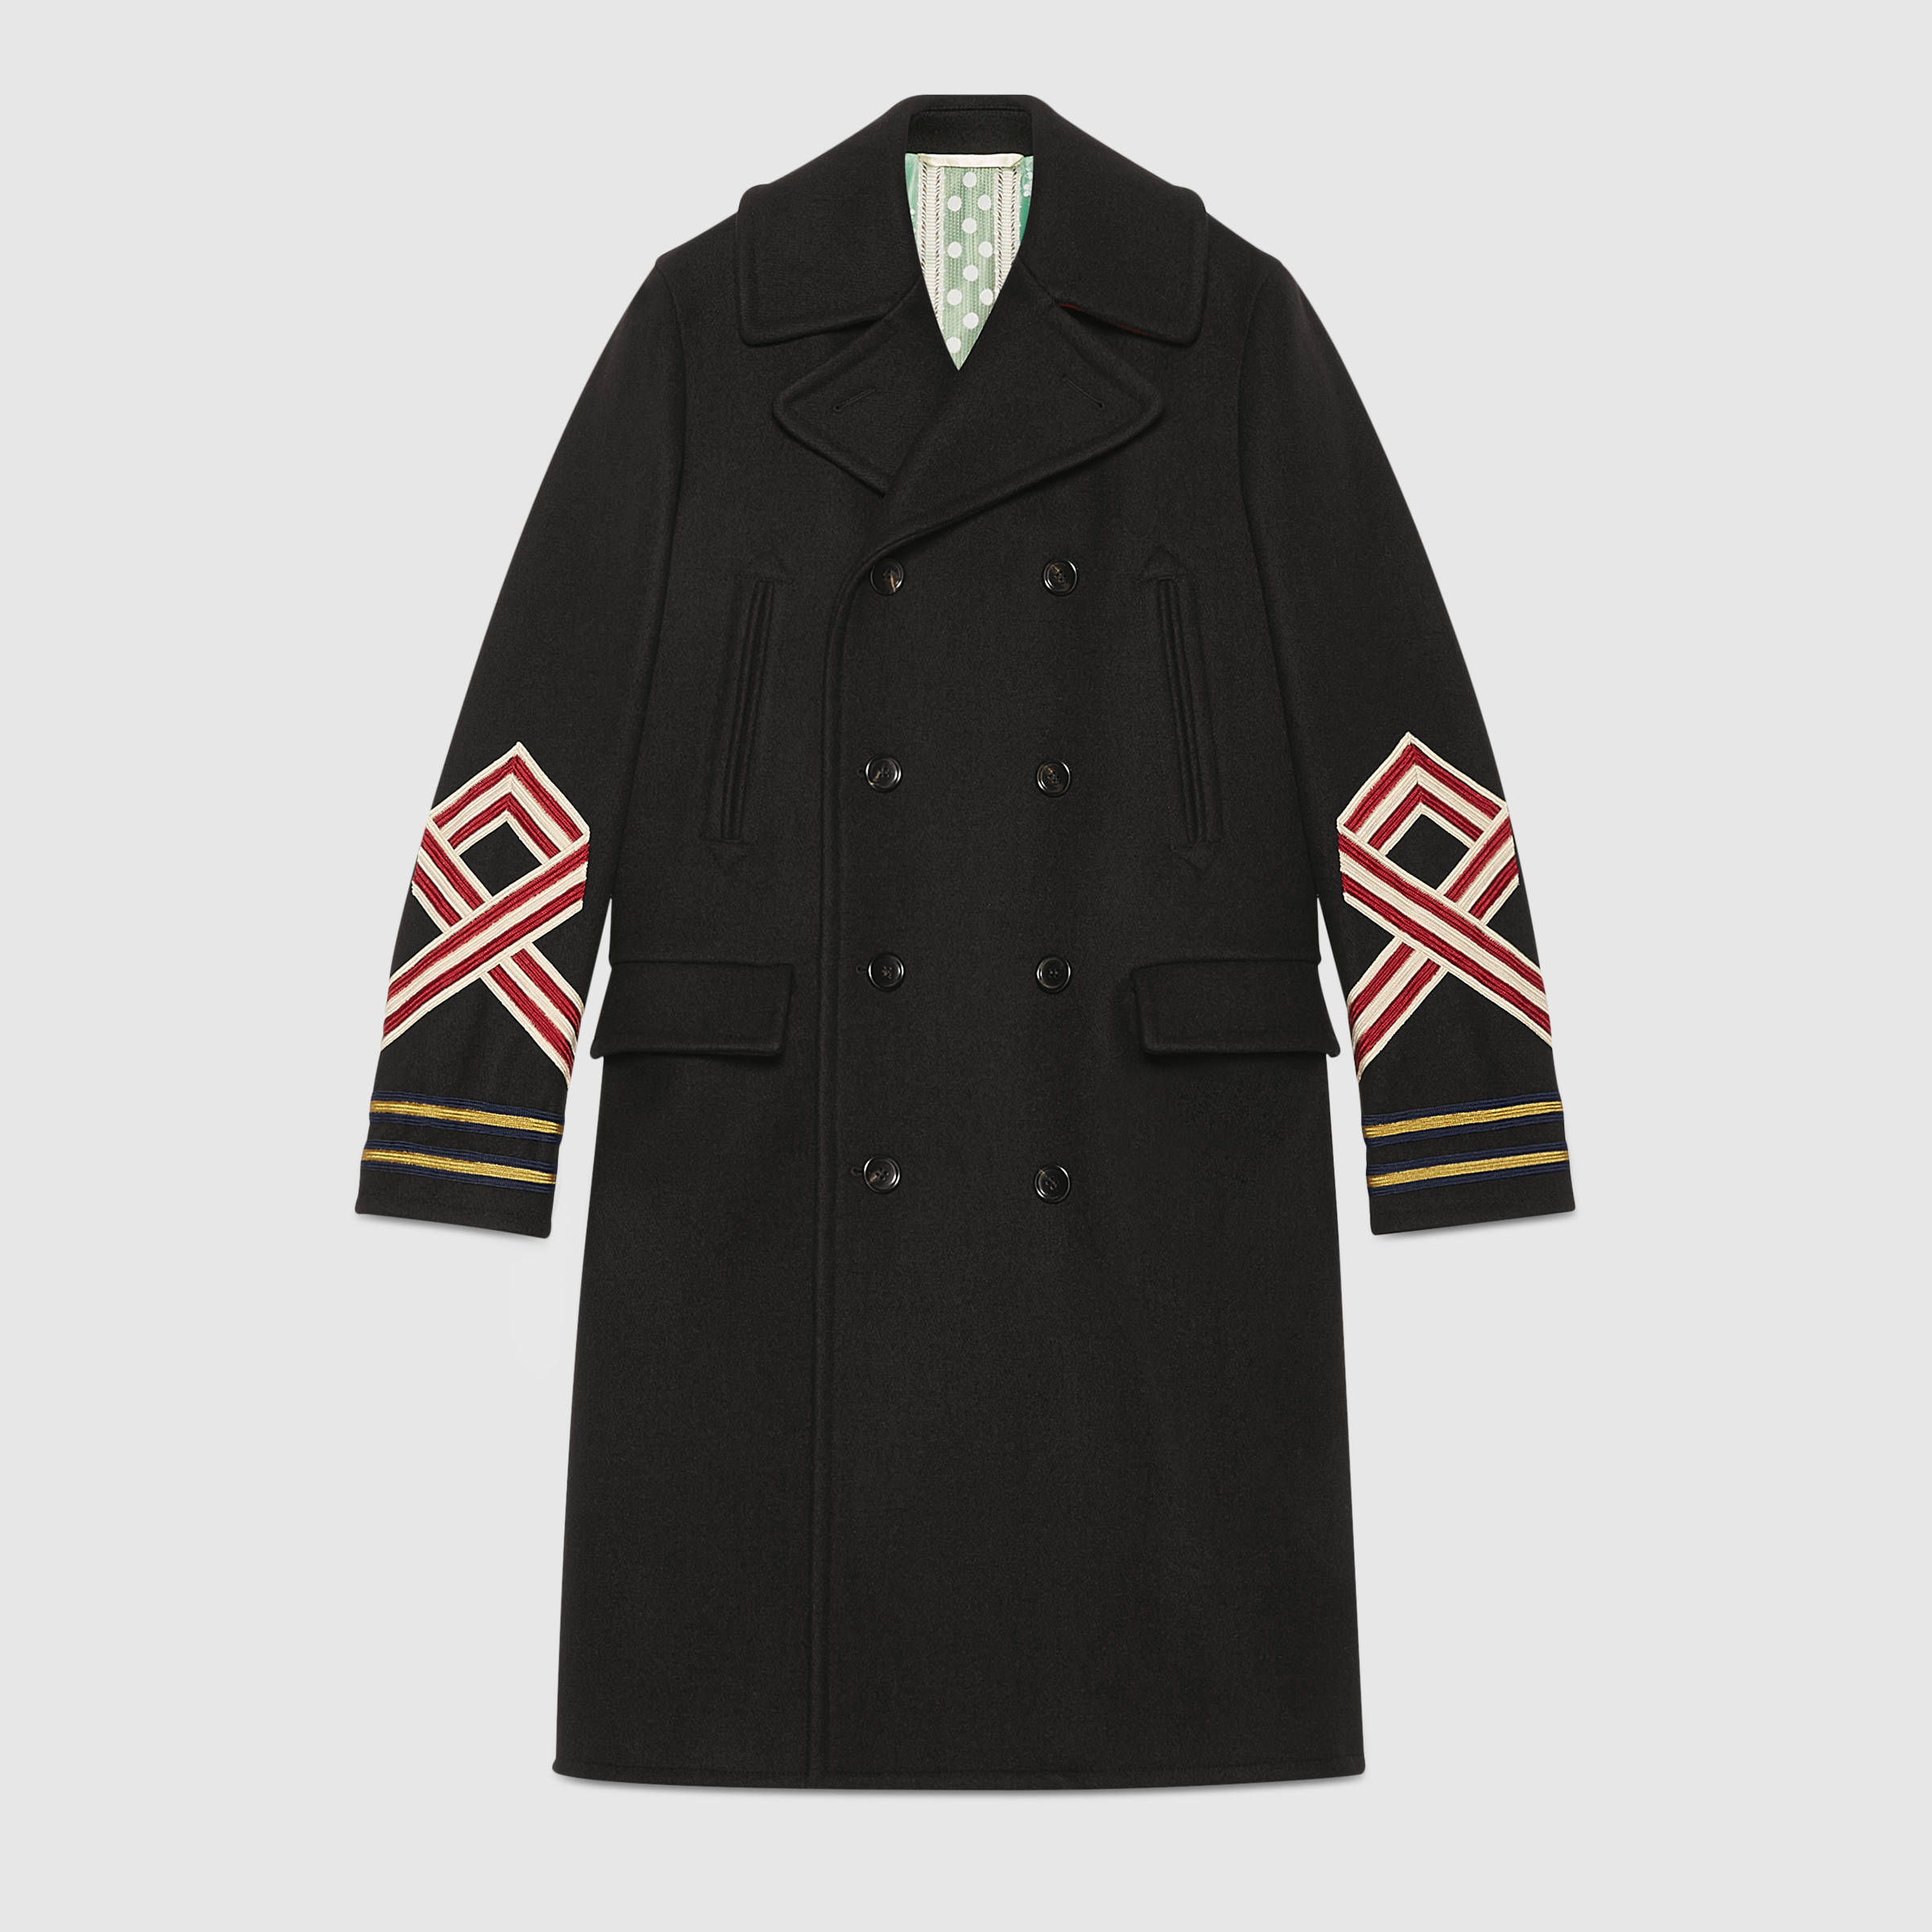 wool coat with embroideries gafozcj